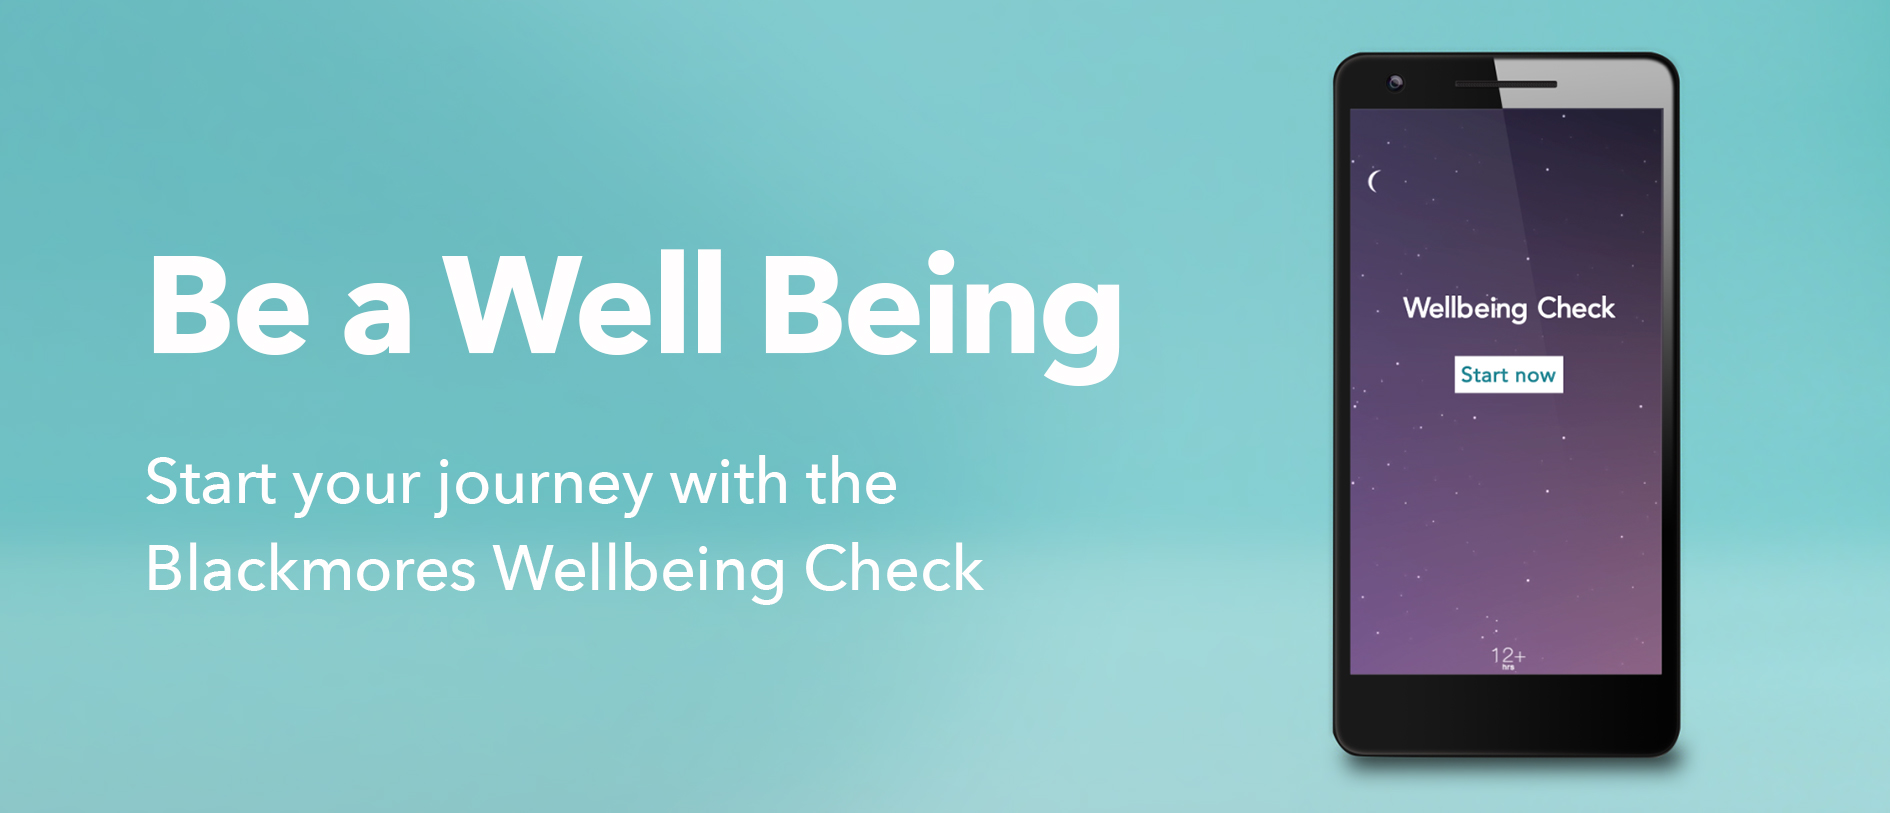 Blackmores Wellbeing Check